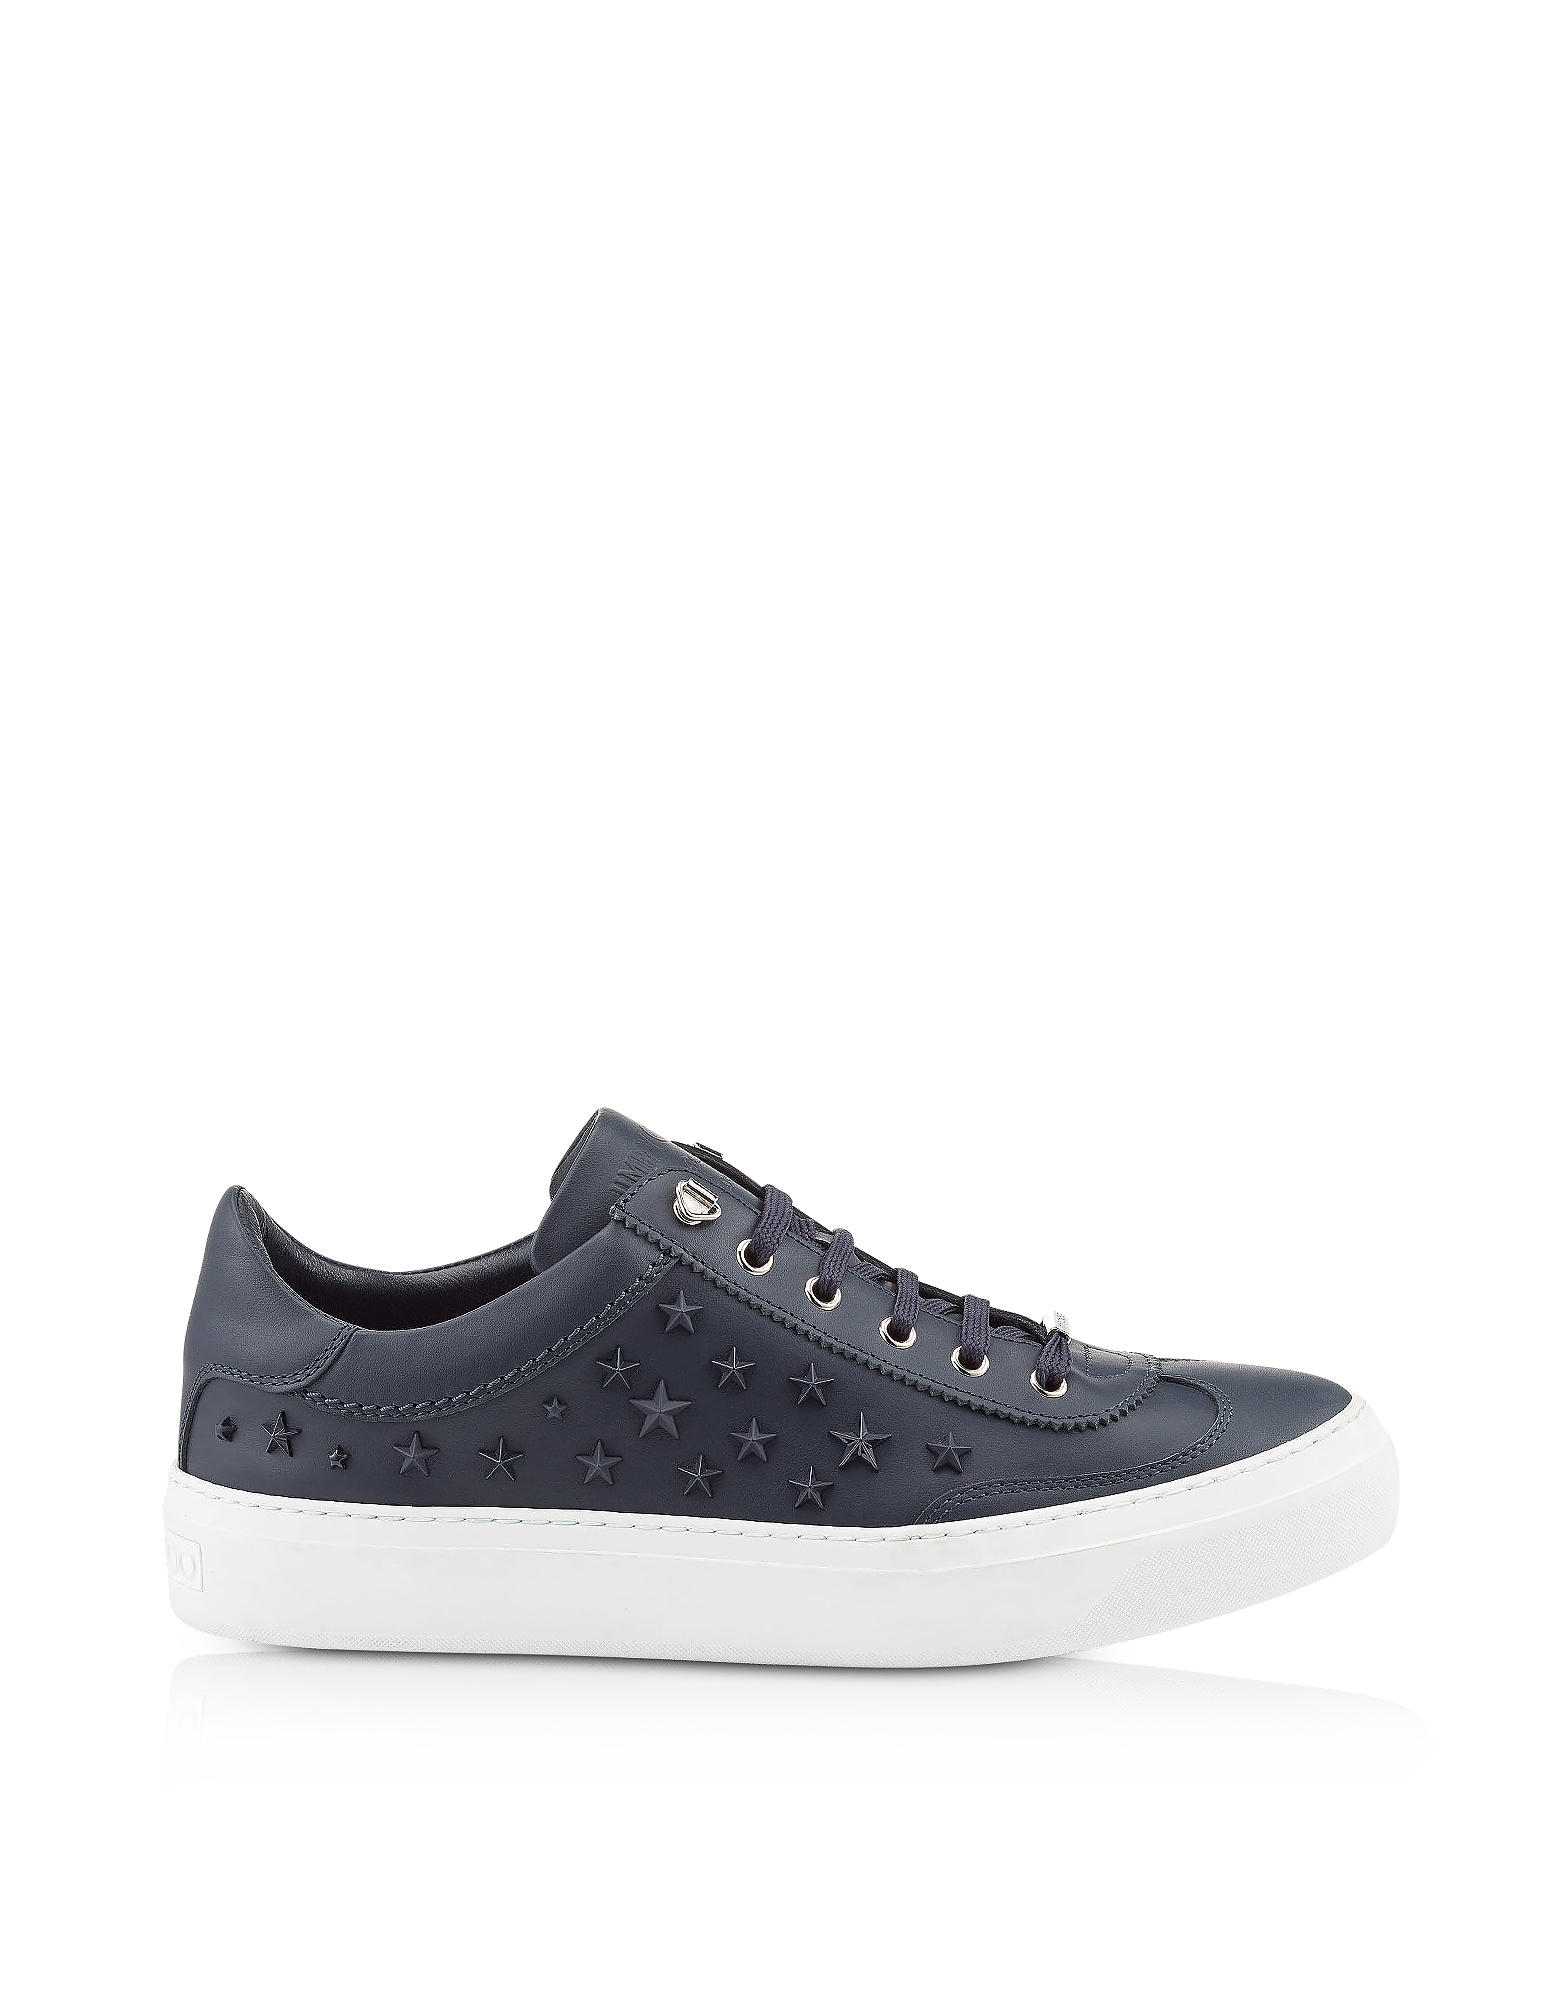 Jimmy Choo Shoes, Ace OMX Navy Blue Leather Low Top Sneakers w/Studded Stars